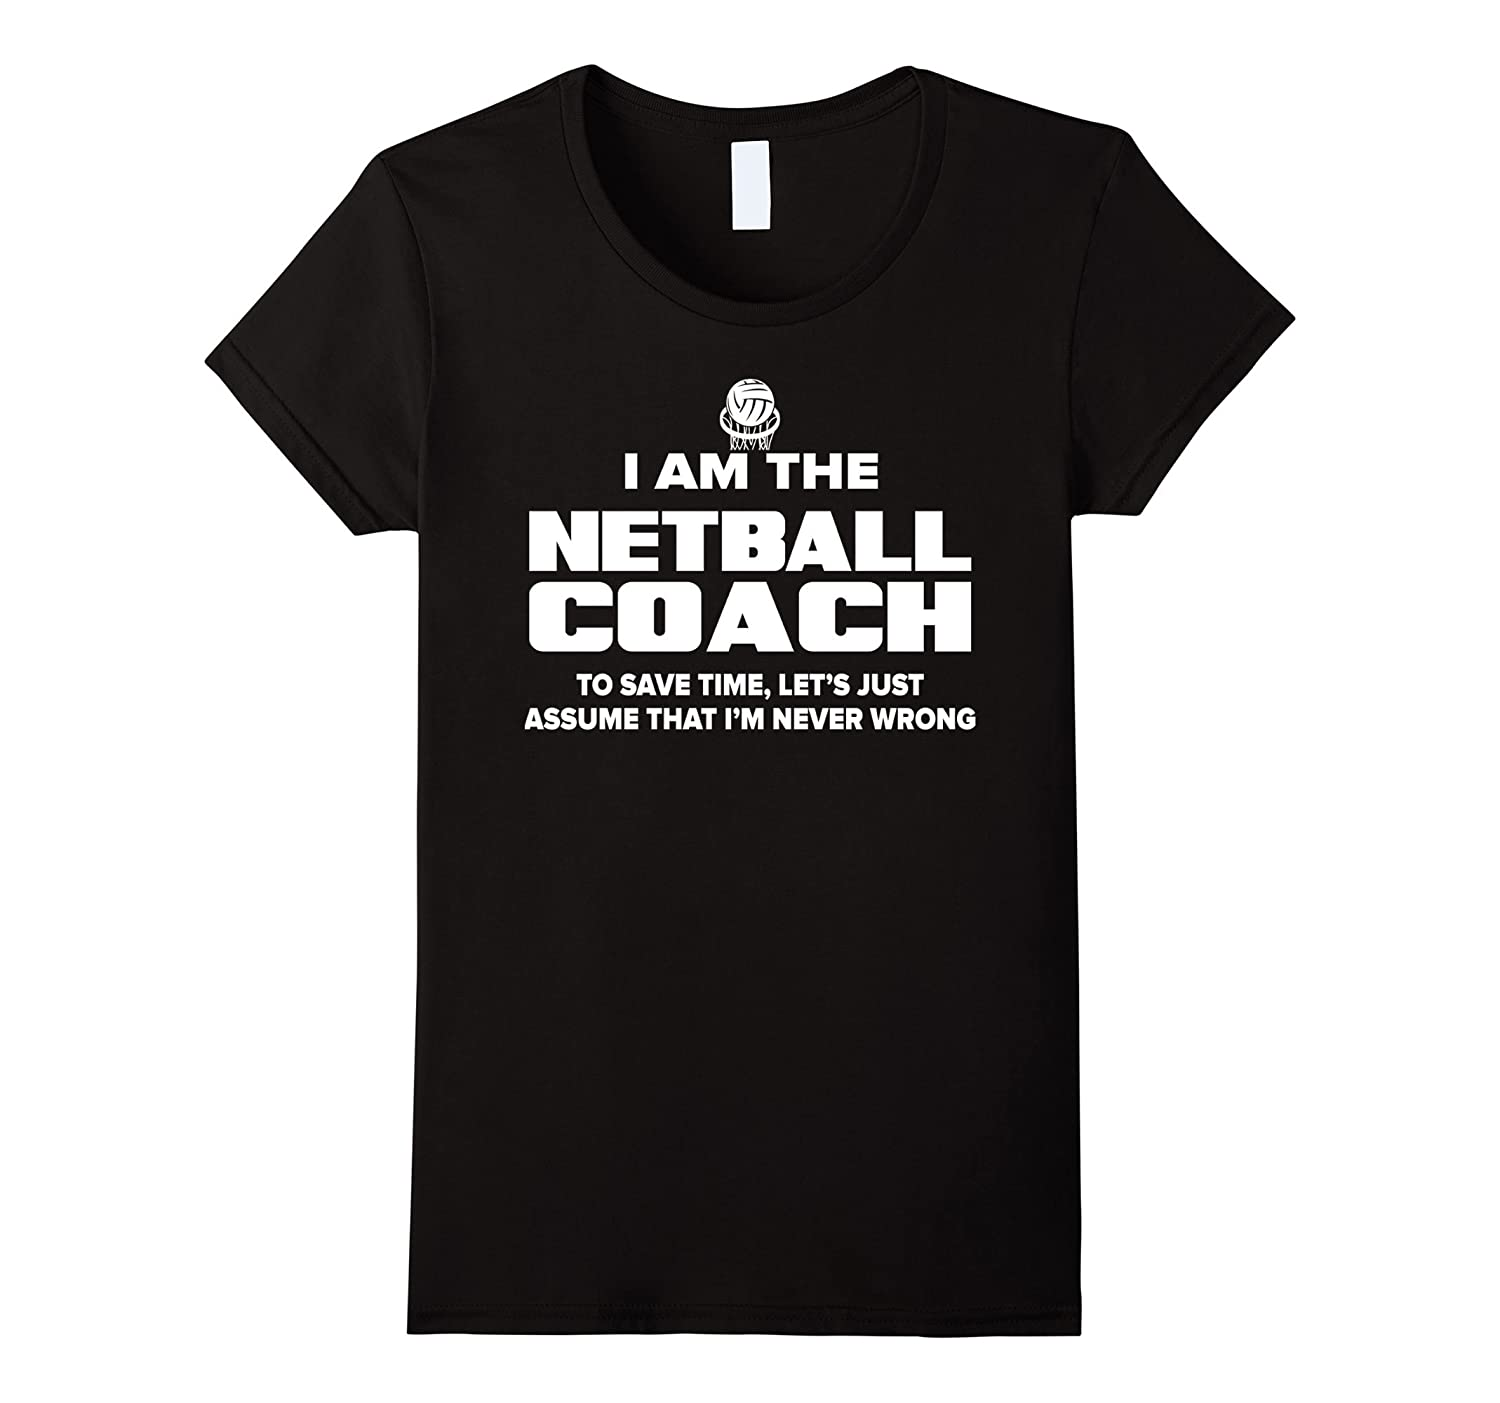 Design t shirt netball - Netball Coach T Shirt Funny Gift Assume I M Never Wrong Amazon Co Uk Clothing